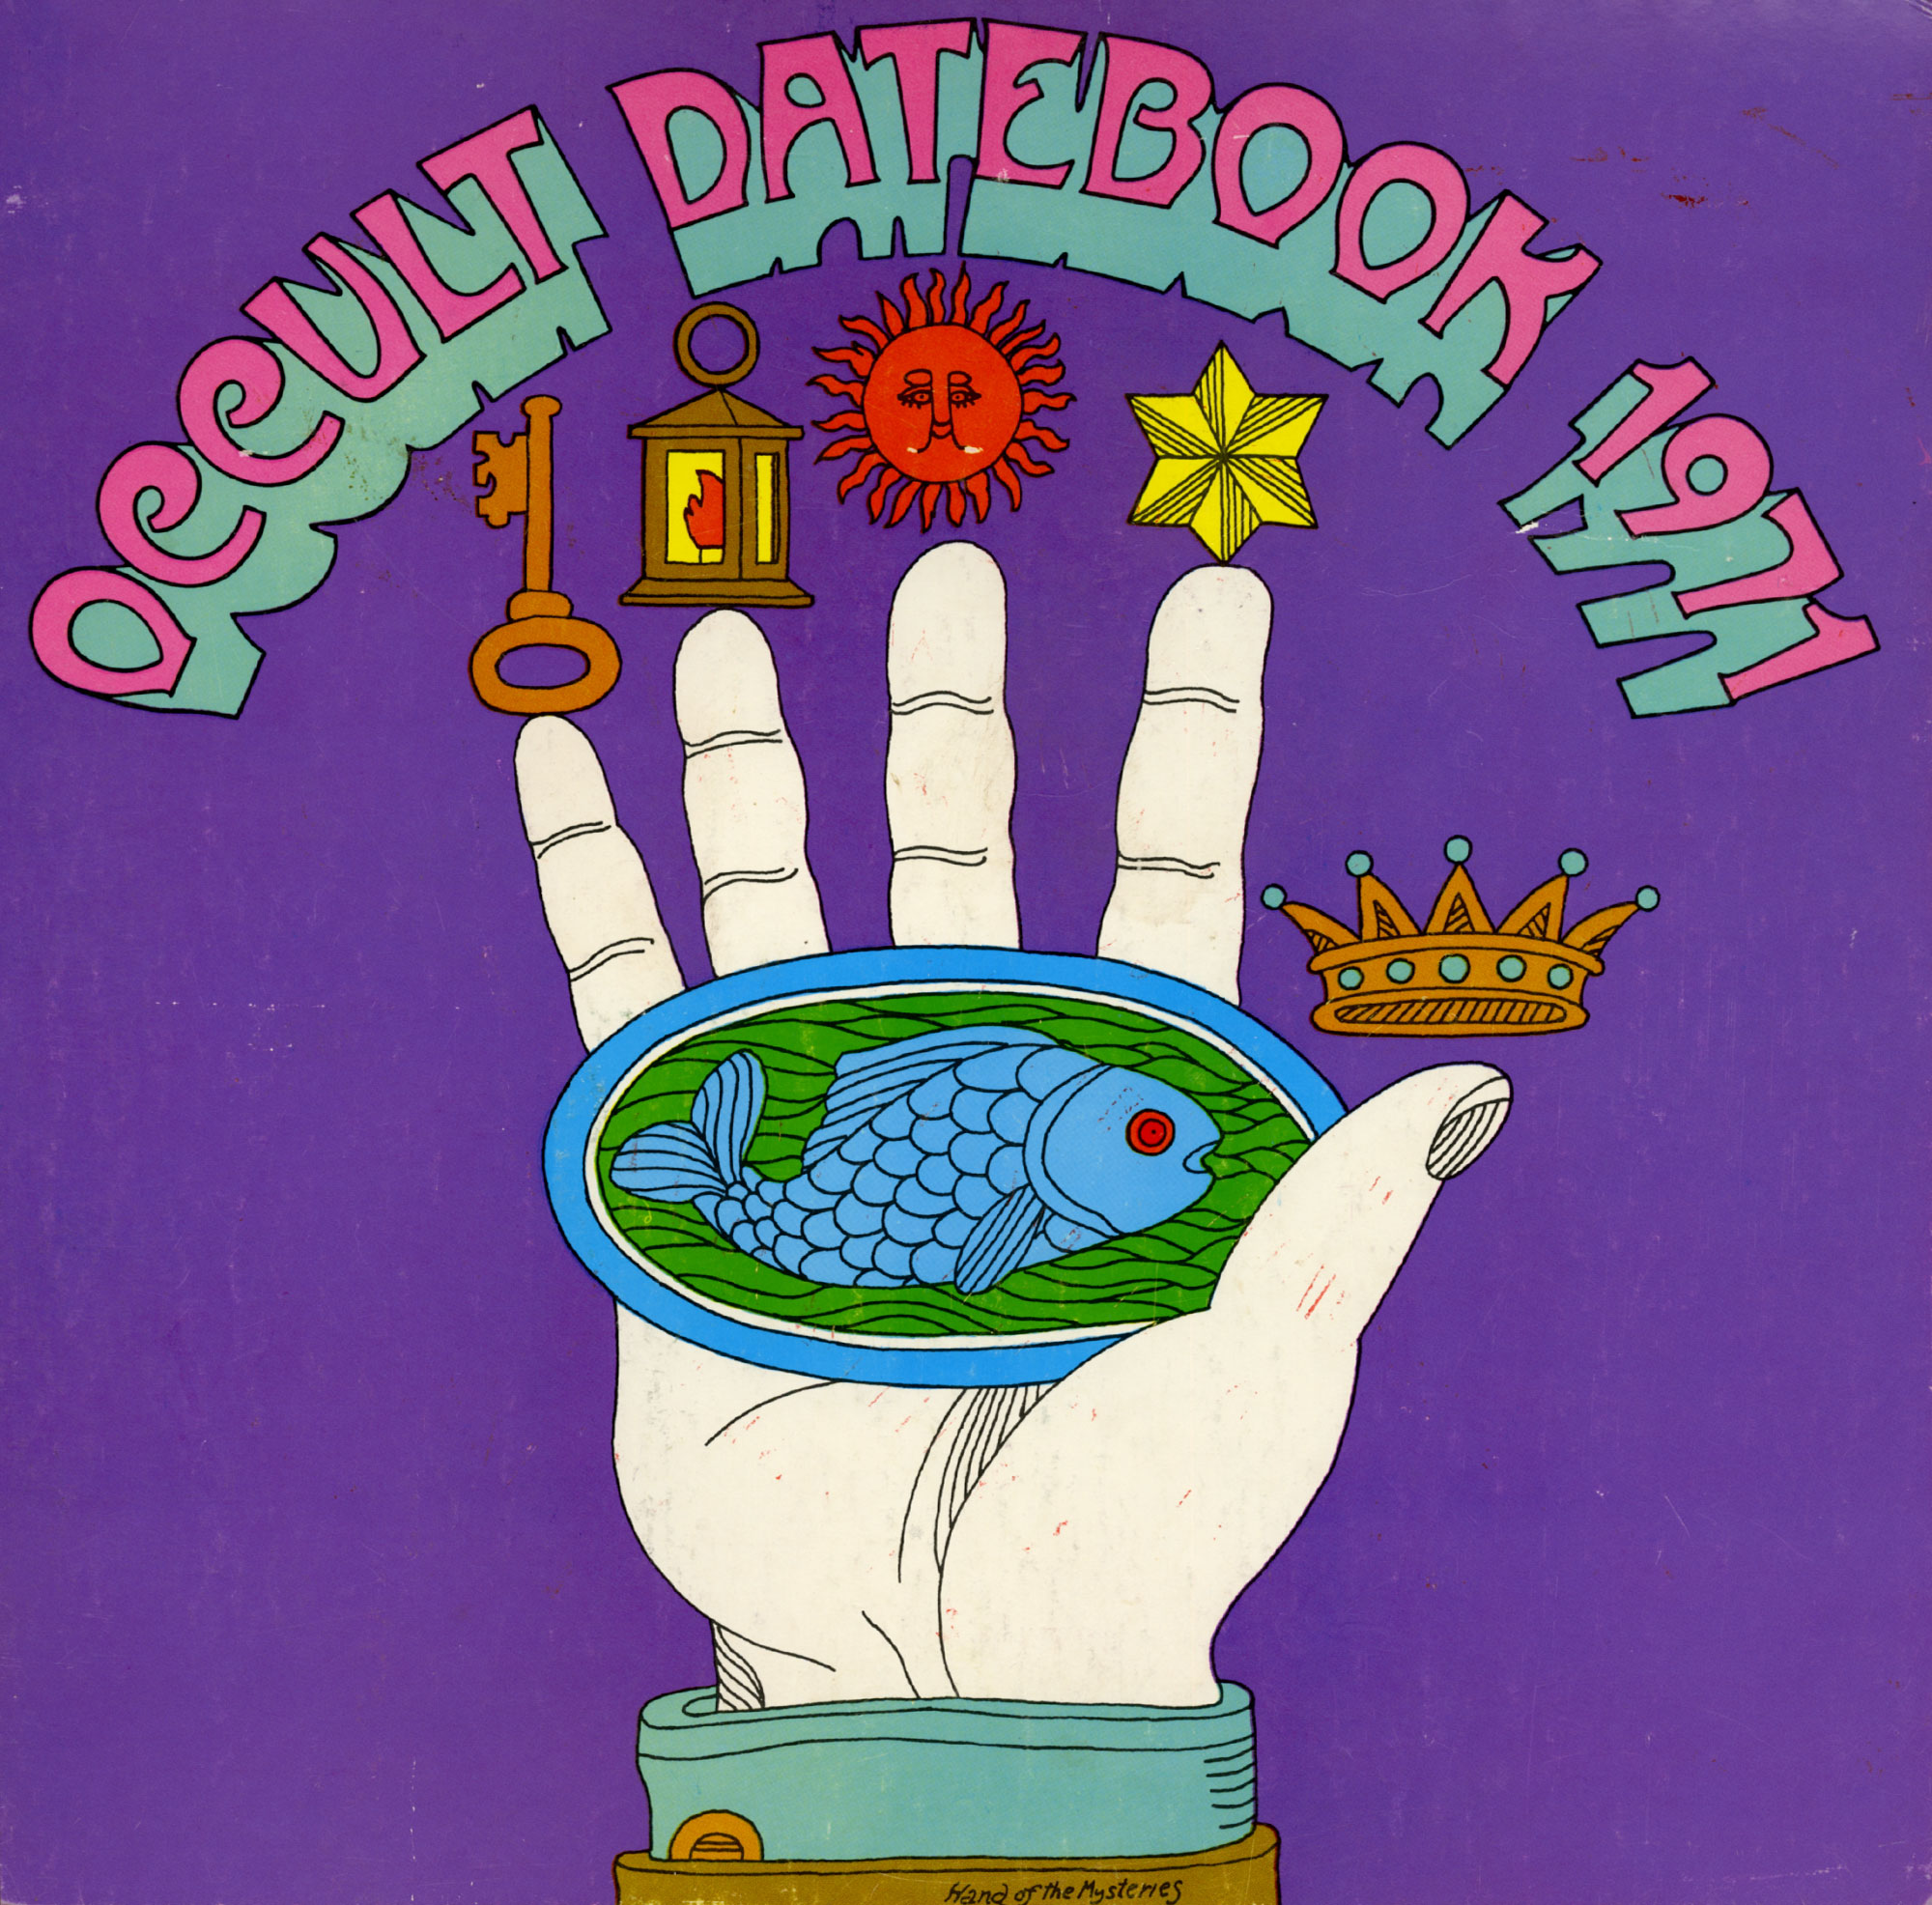 1971 OCCULT DATEBOOK